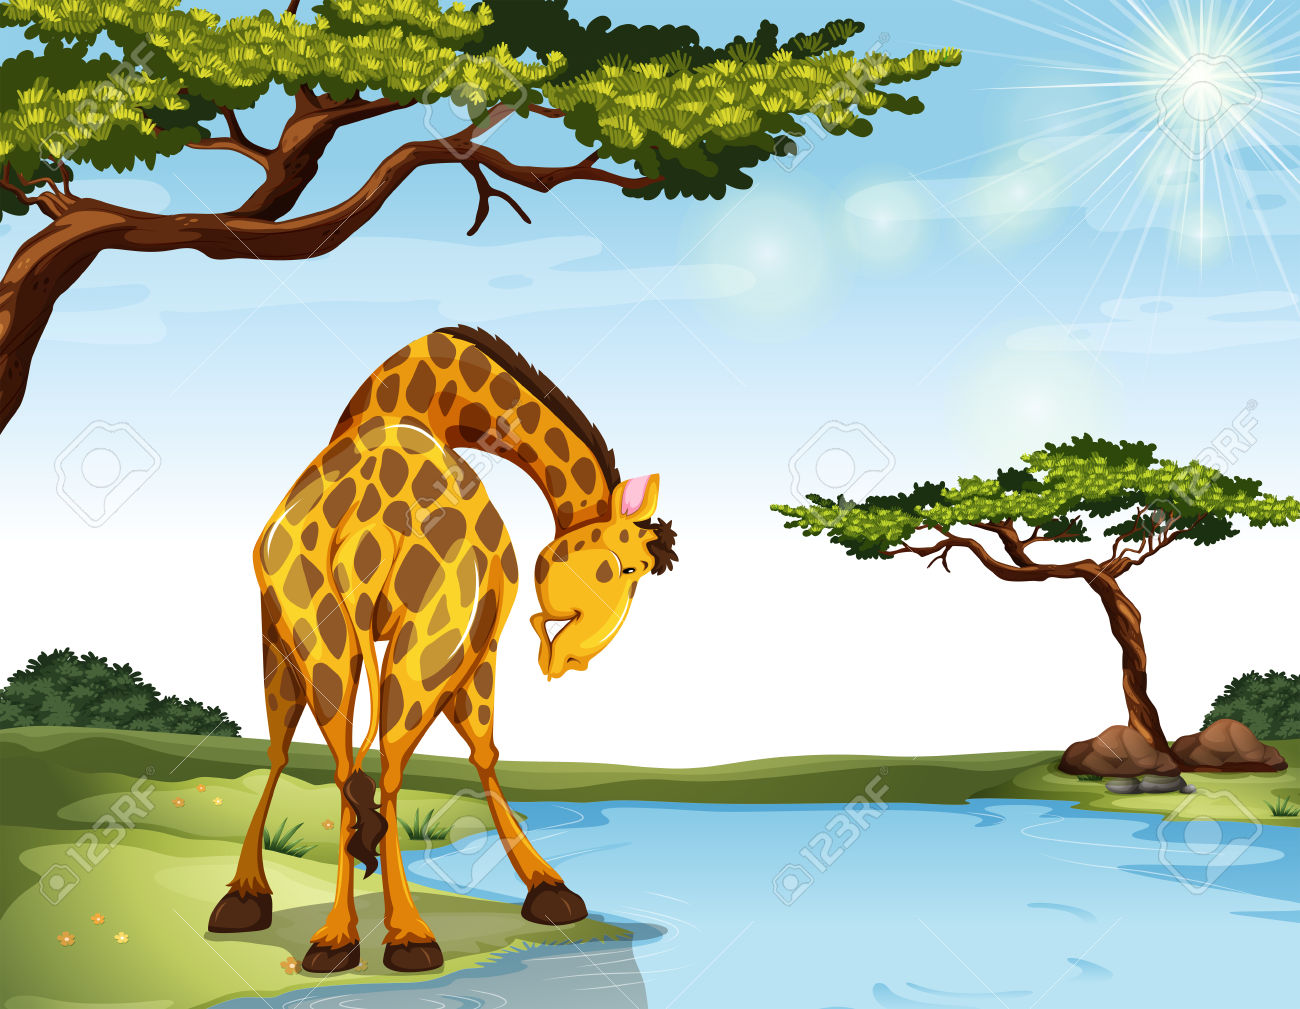 River bank clipart picture Giraffe Standing At The River Bank Royalty Free Cliparts, Vectors ... picture